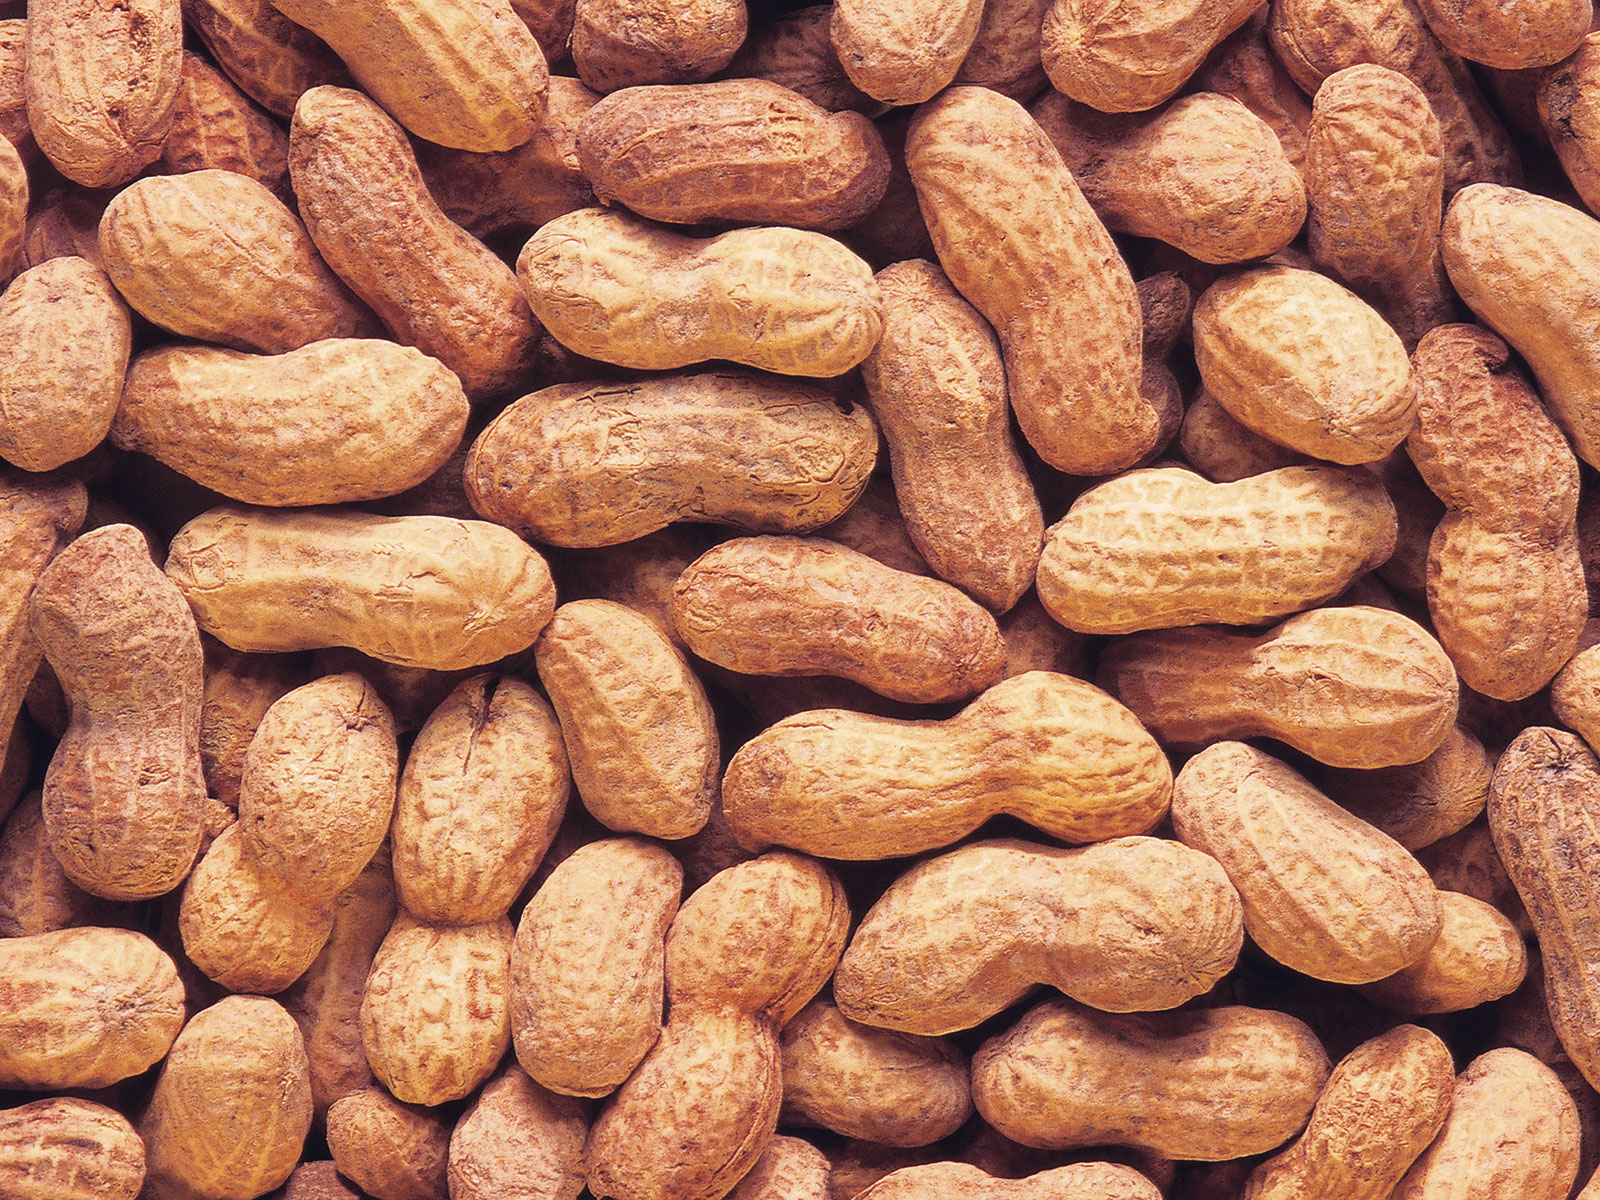 Giving Your Baby Peanuts at This Age Could Help Prevent Allergies